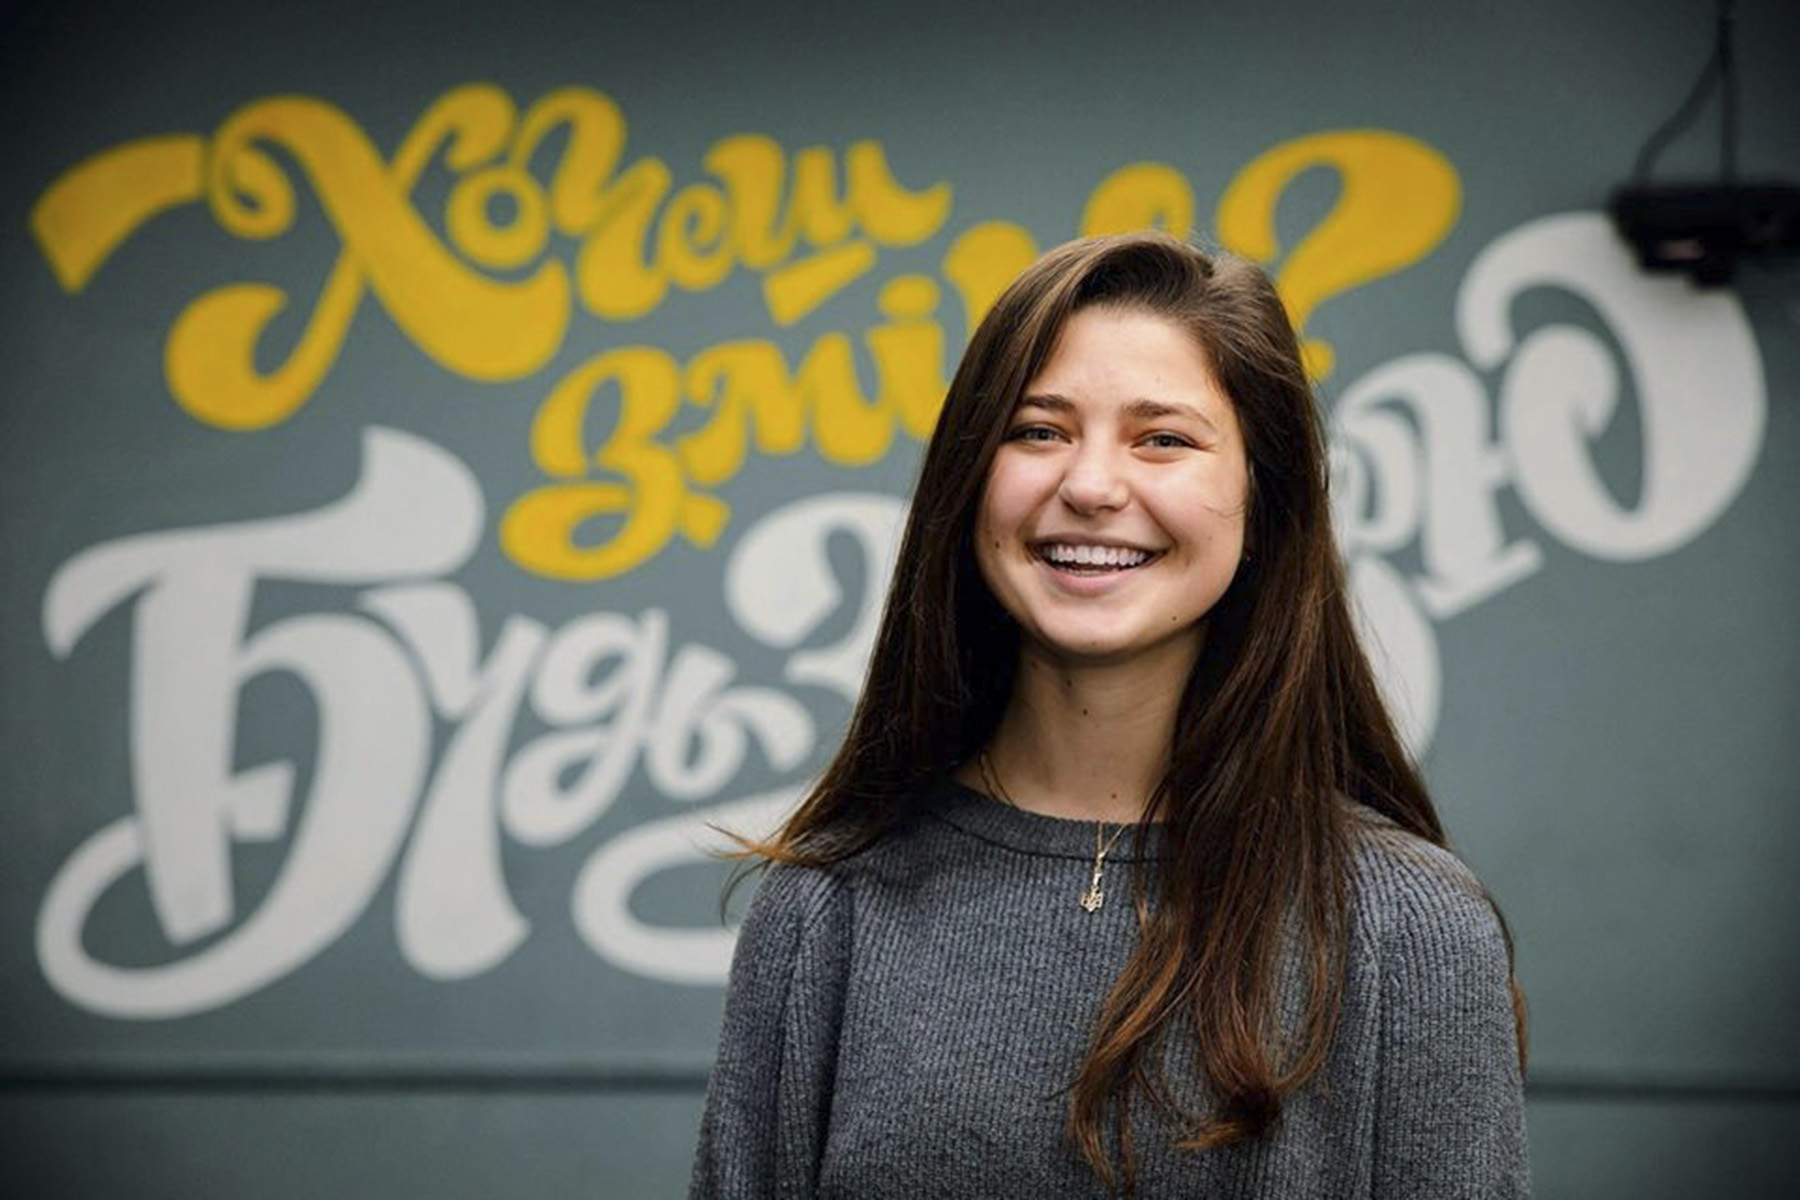 Teya Lucyshyn â19 serves as a Peace Corps volunteer in the Ukraine, where she works at a youth center.